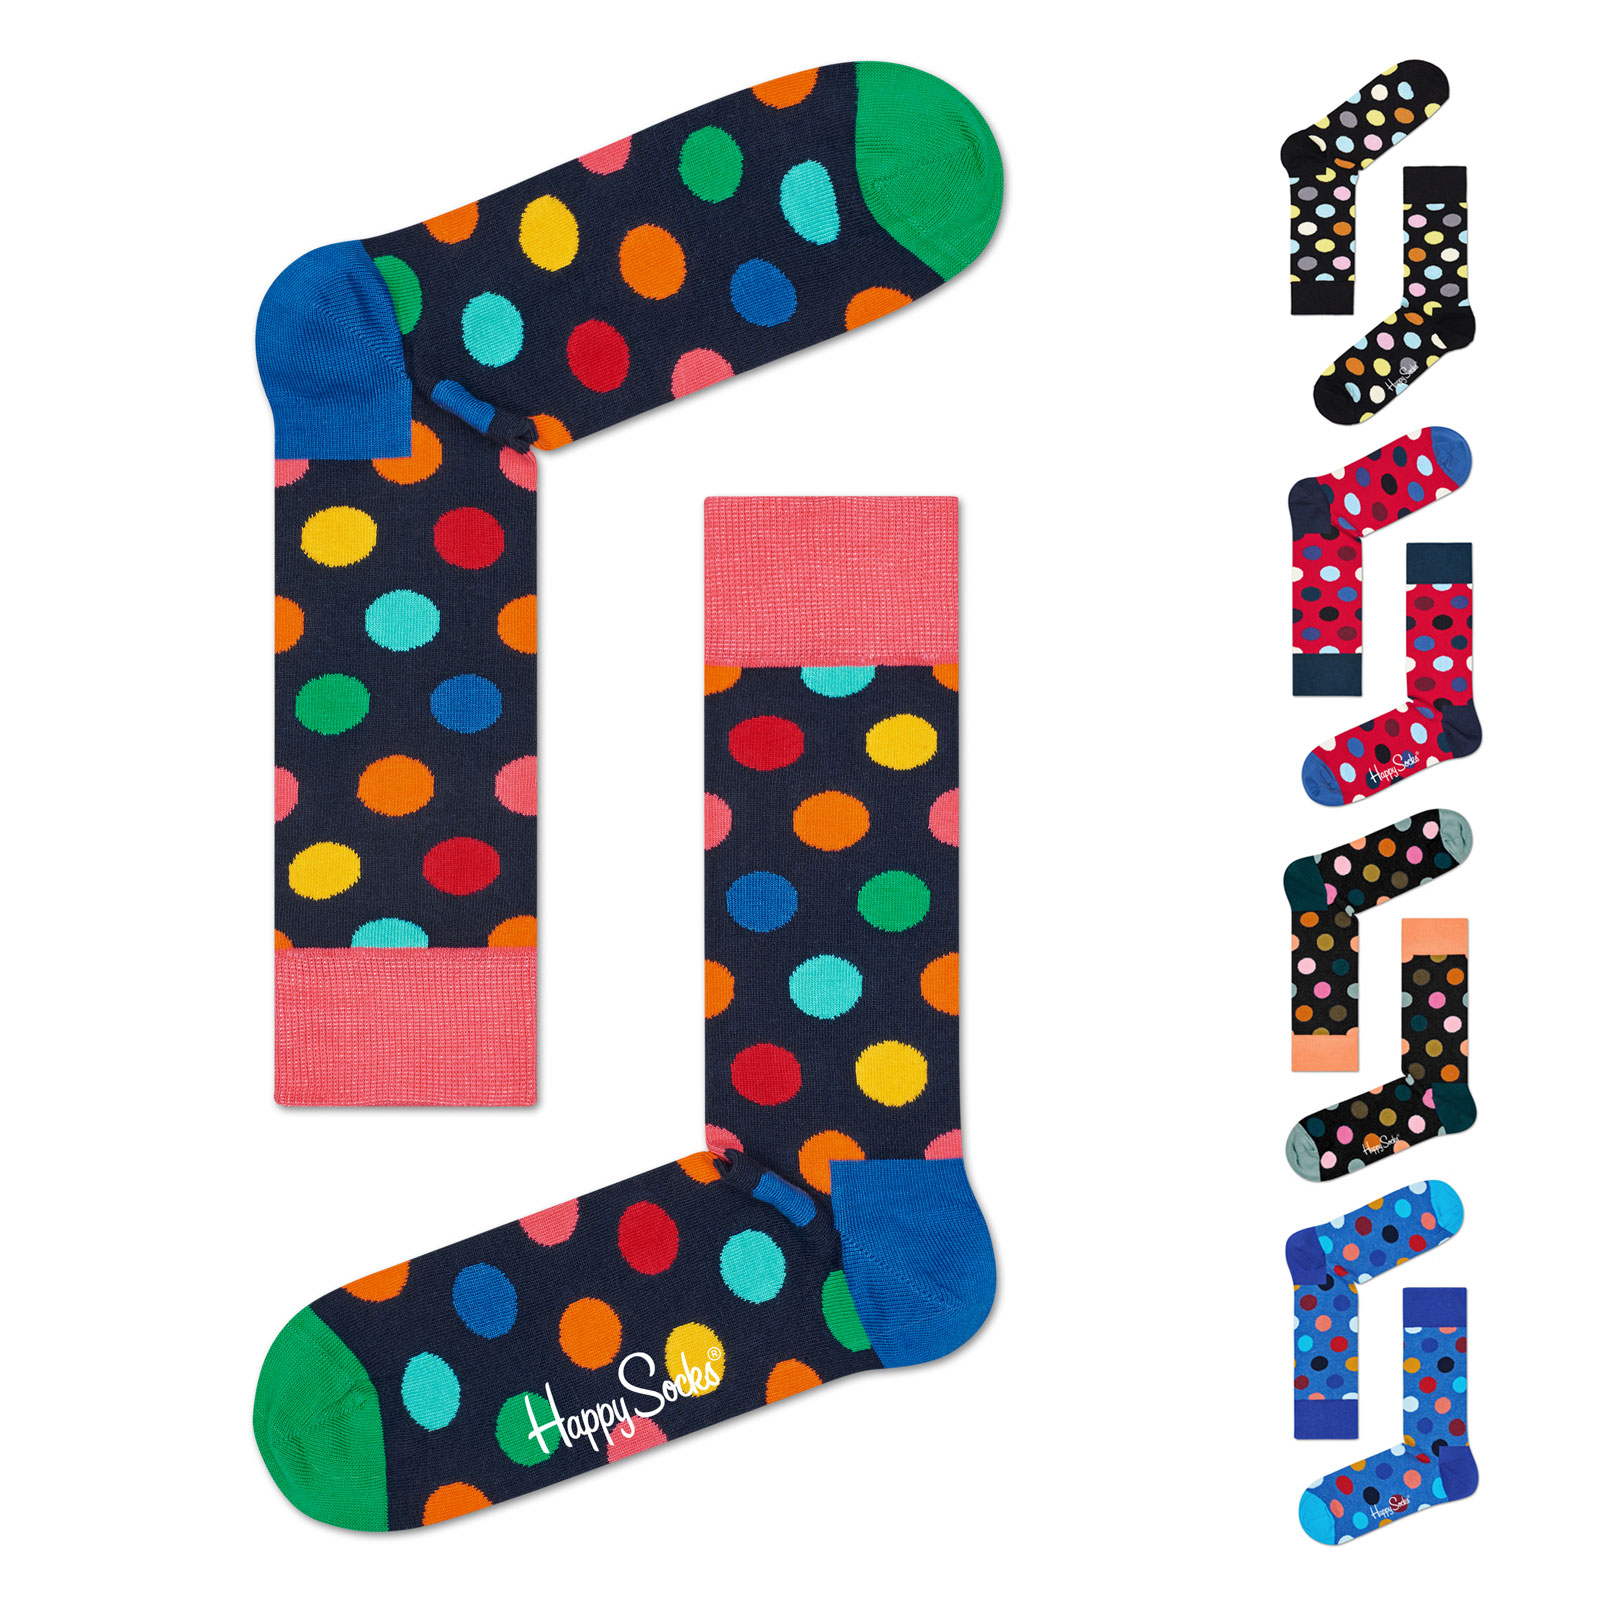 Happy Socks Unisex Socken Strümpfe Big Dot BDO01 36/40 41/46 in multi petrol